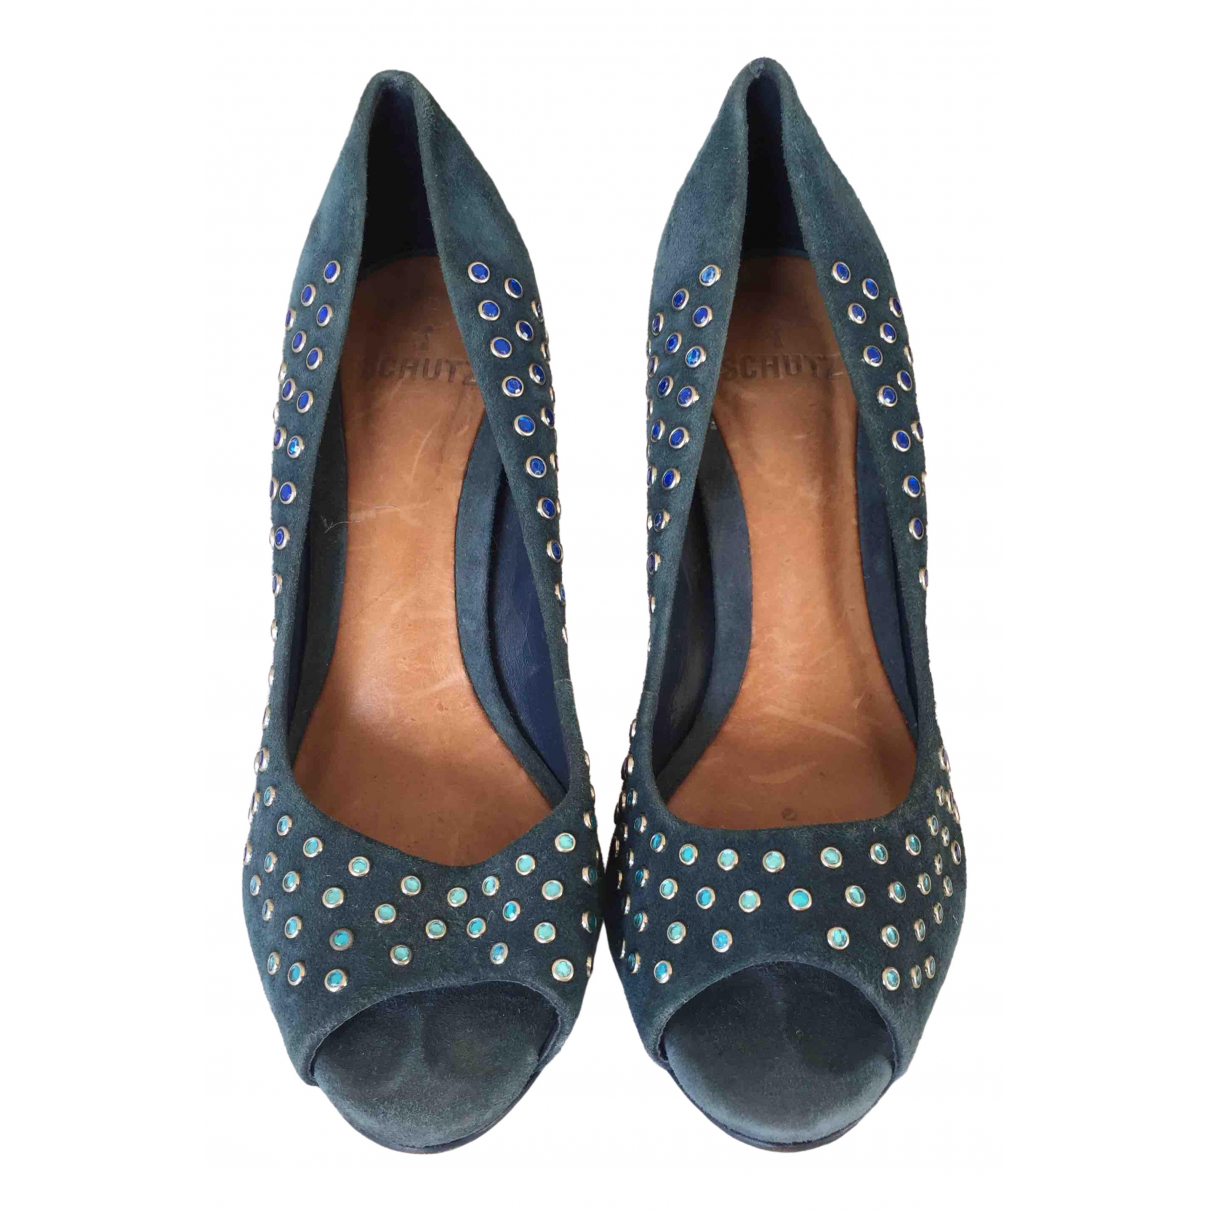 Schutz \N Pumps in  Blau Lackleder